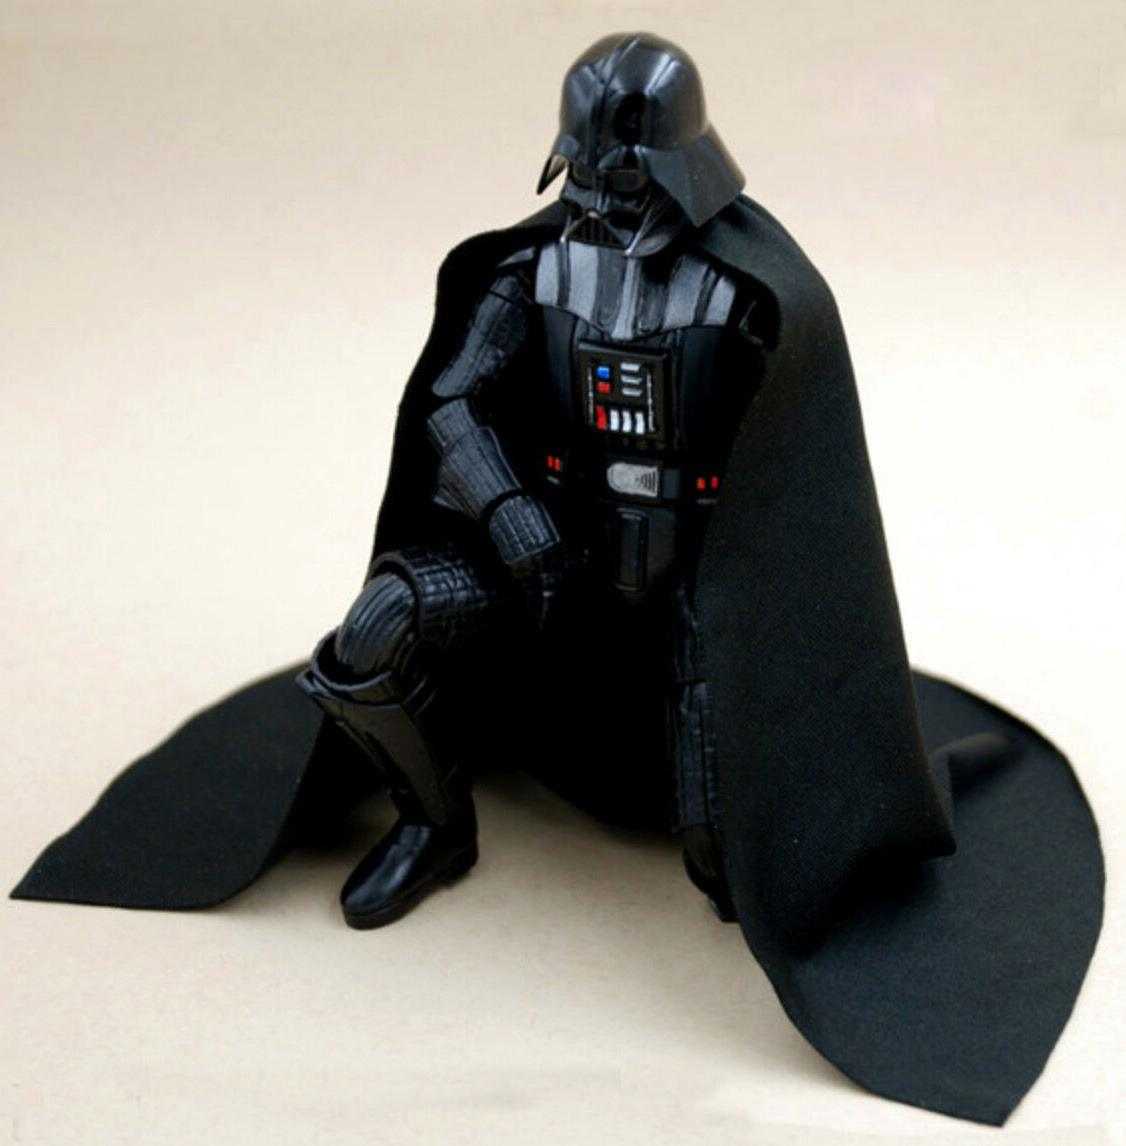 MY-C2-DV: FIGLot Fabric cape for Bandai 1/12 scale Darth Vad